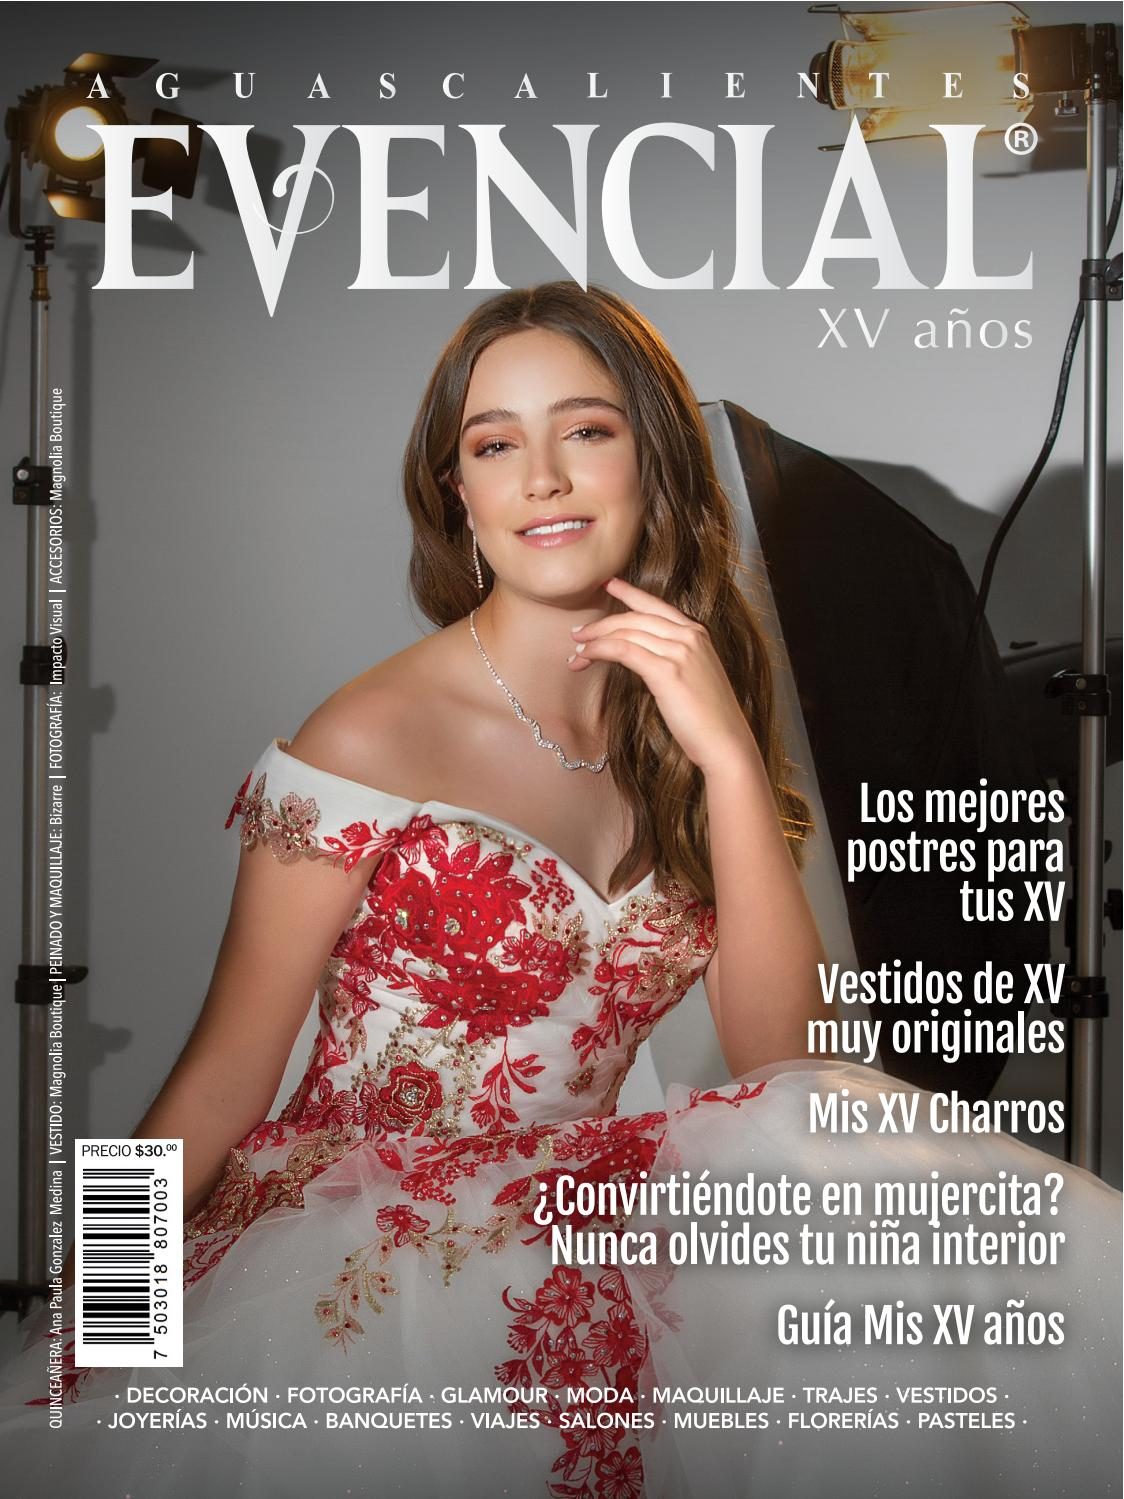 701454119 No. 22 Evencial XV Años Feb 2018 by Revista Evencial - issuu